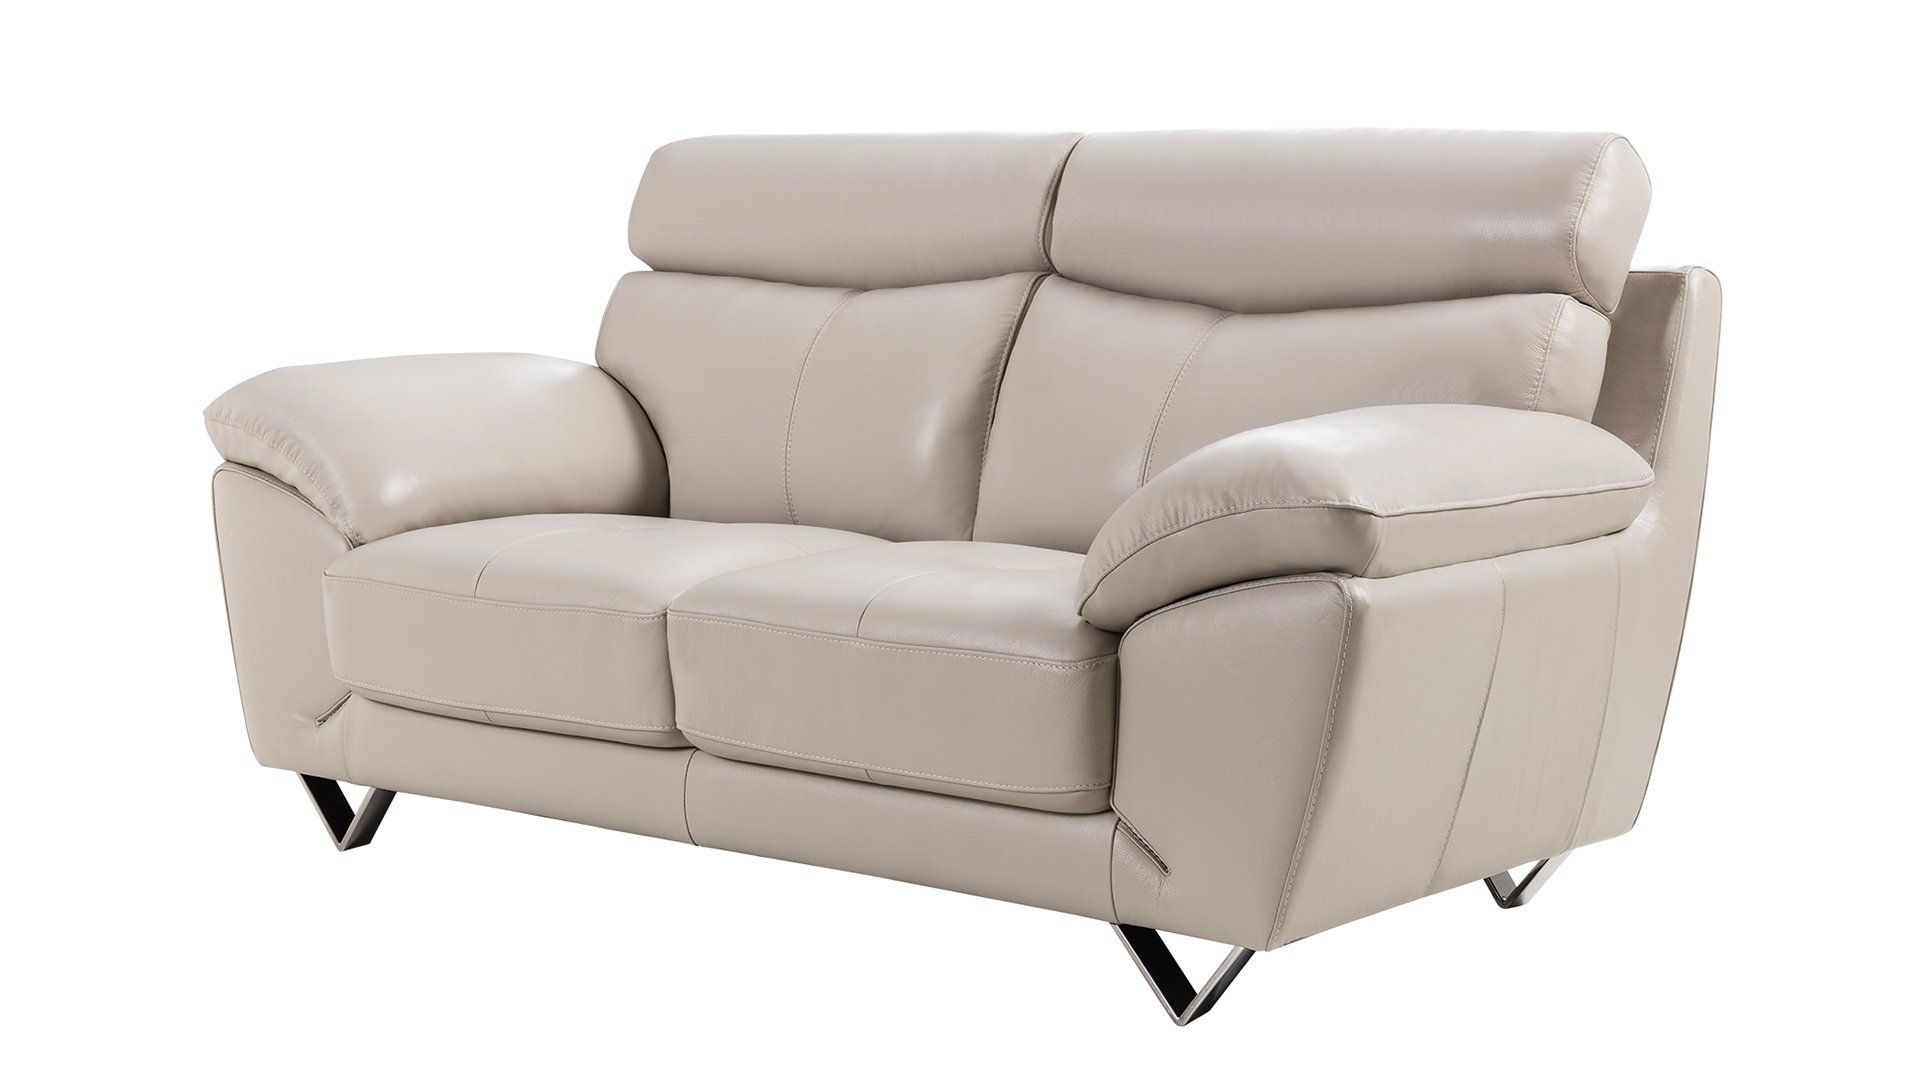 montclair top grain leather sofa and loveseat set replacement mattress american eagle furniture valencia collection italian